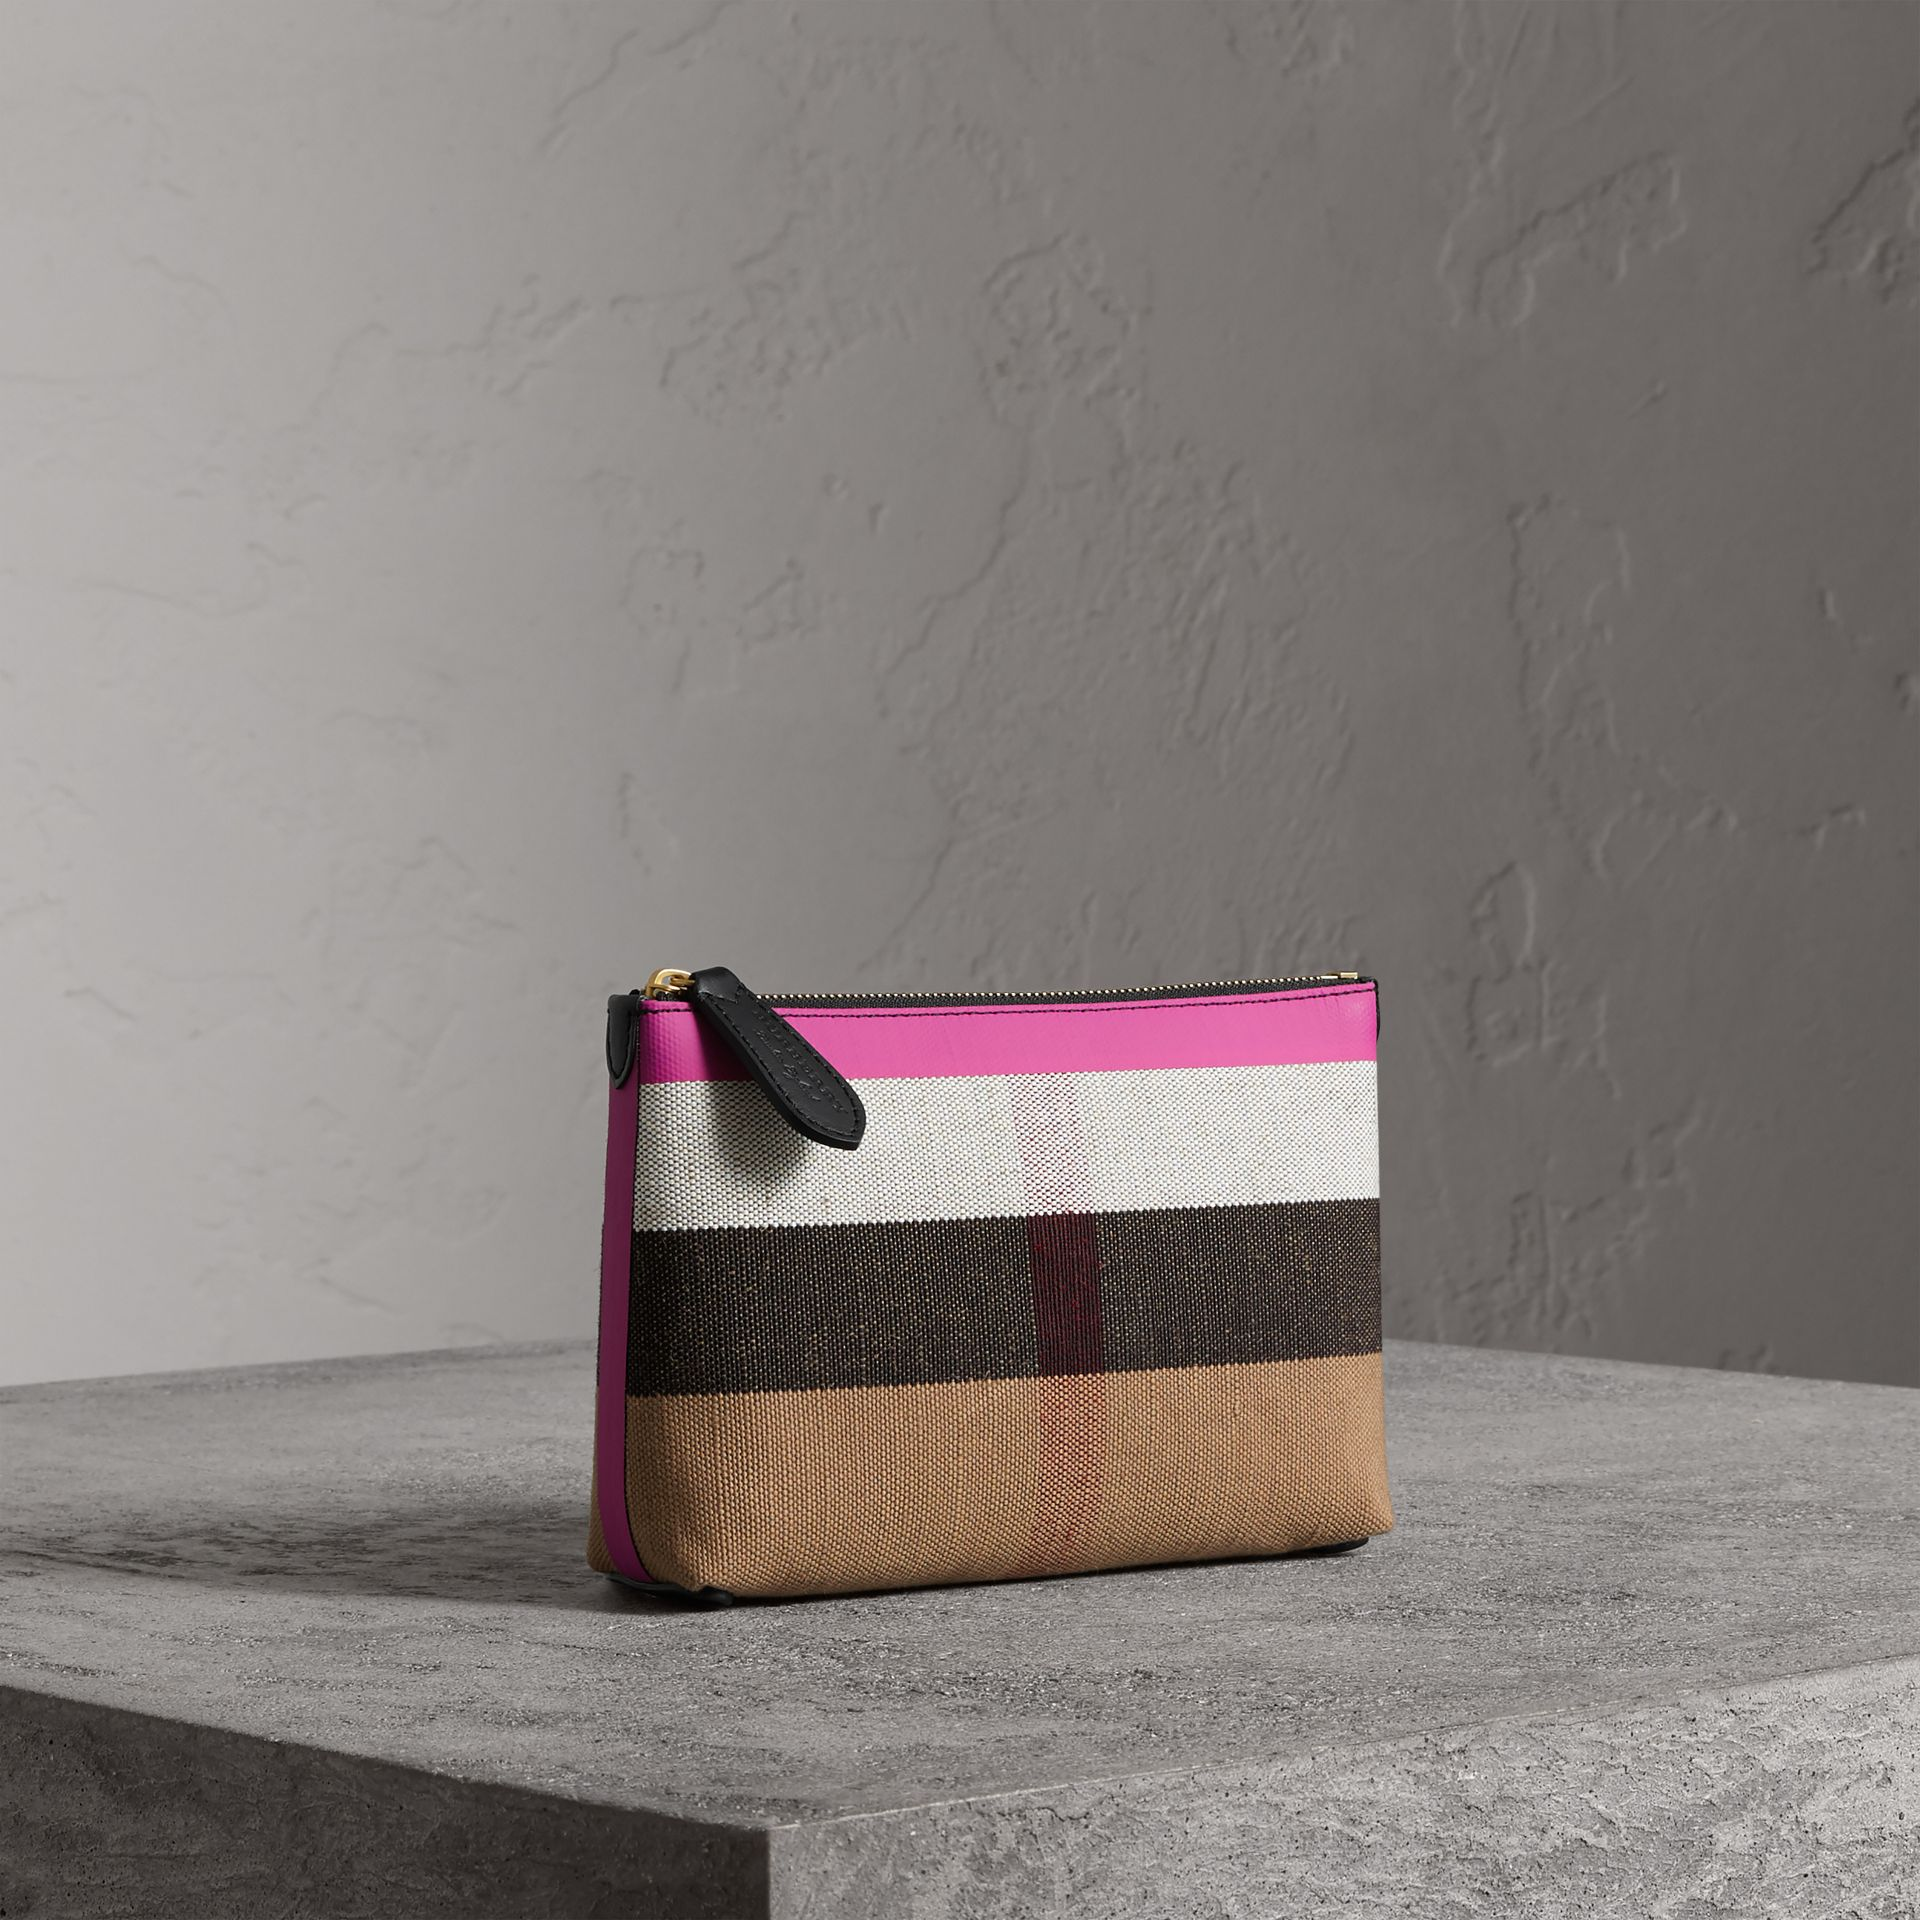 Medium Check Canvas and Leather Zip Pouch in Black/neon Pink - Women | Burberry Australia - gallery image 6